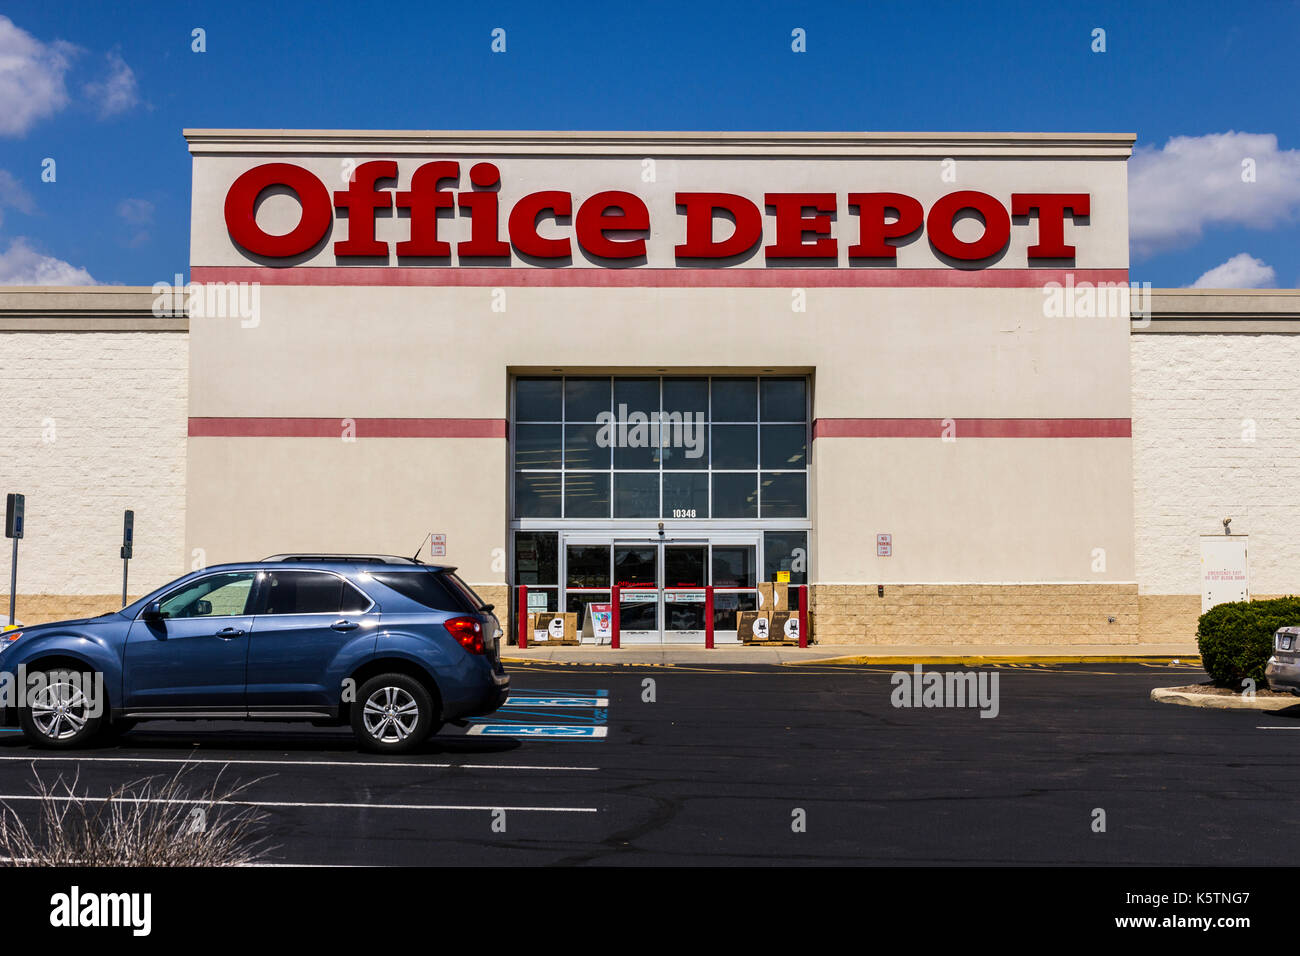 Officemax Stock Photos Officemax Stock Images Alamy